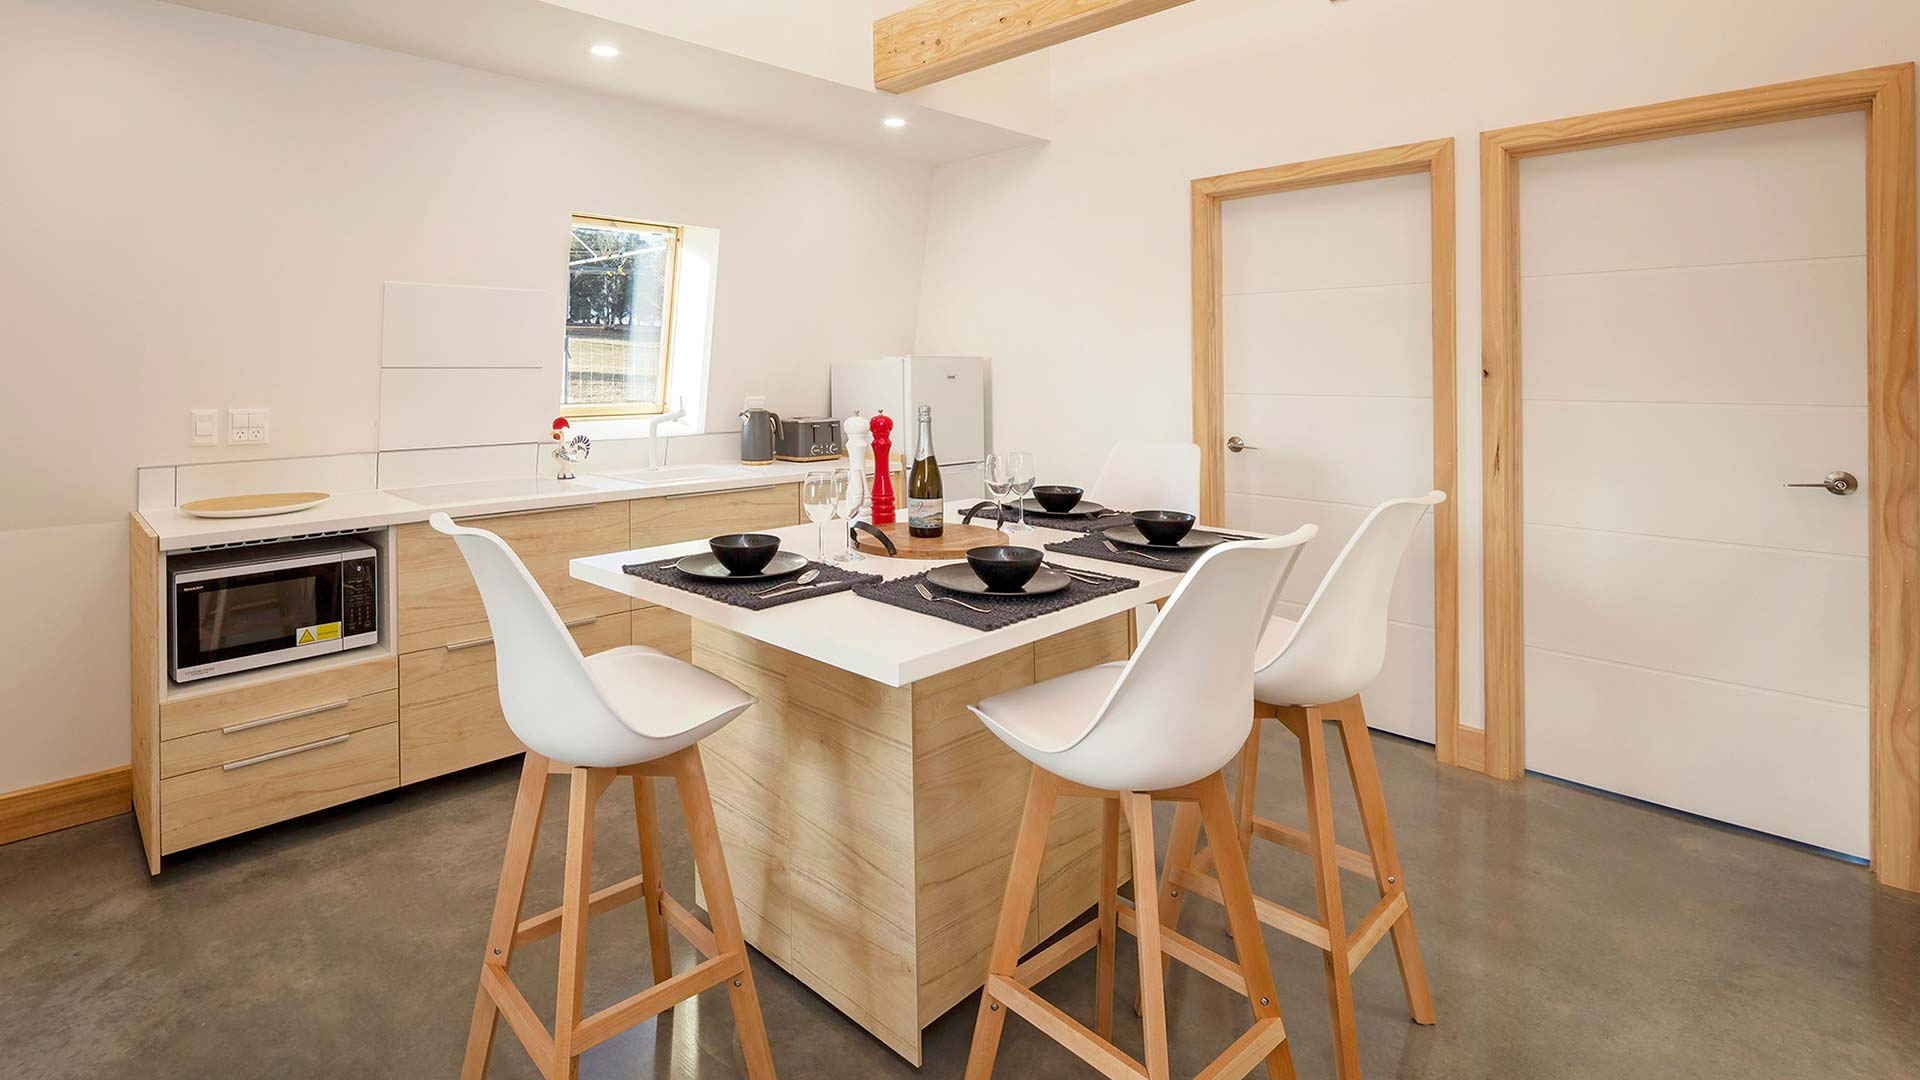 kitchen in the ecokit house with the top quality appliances and wooden design features